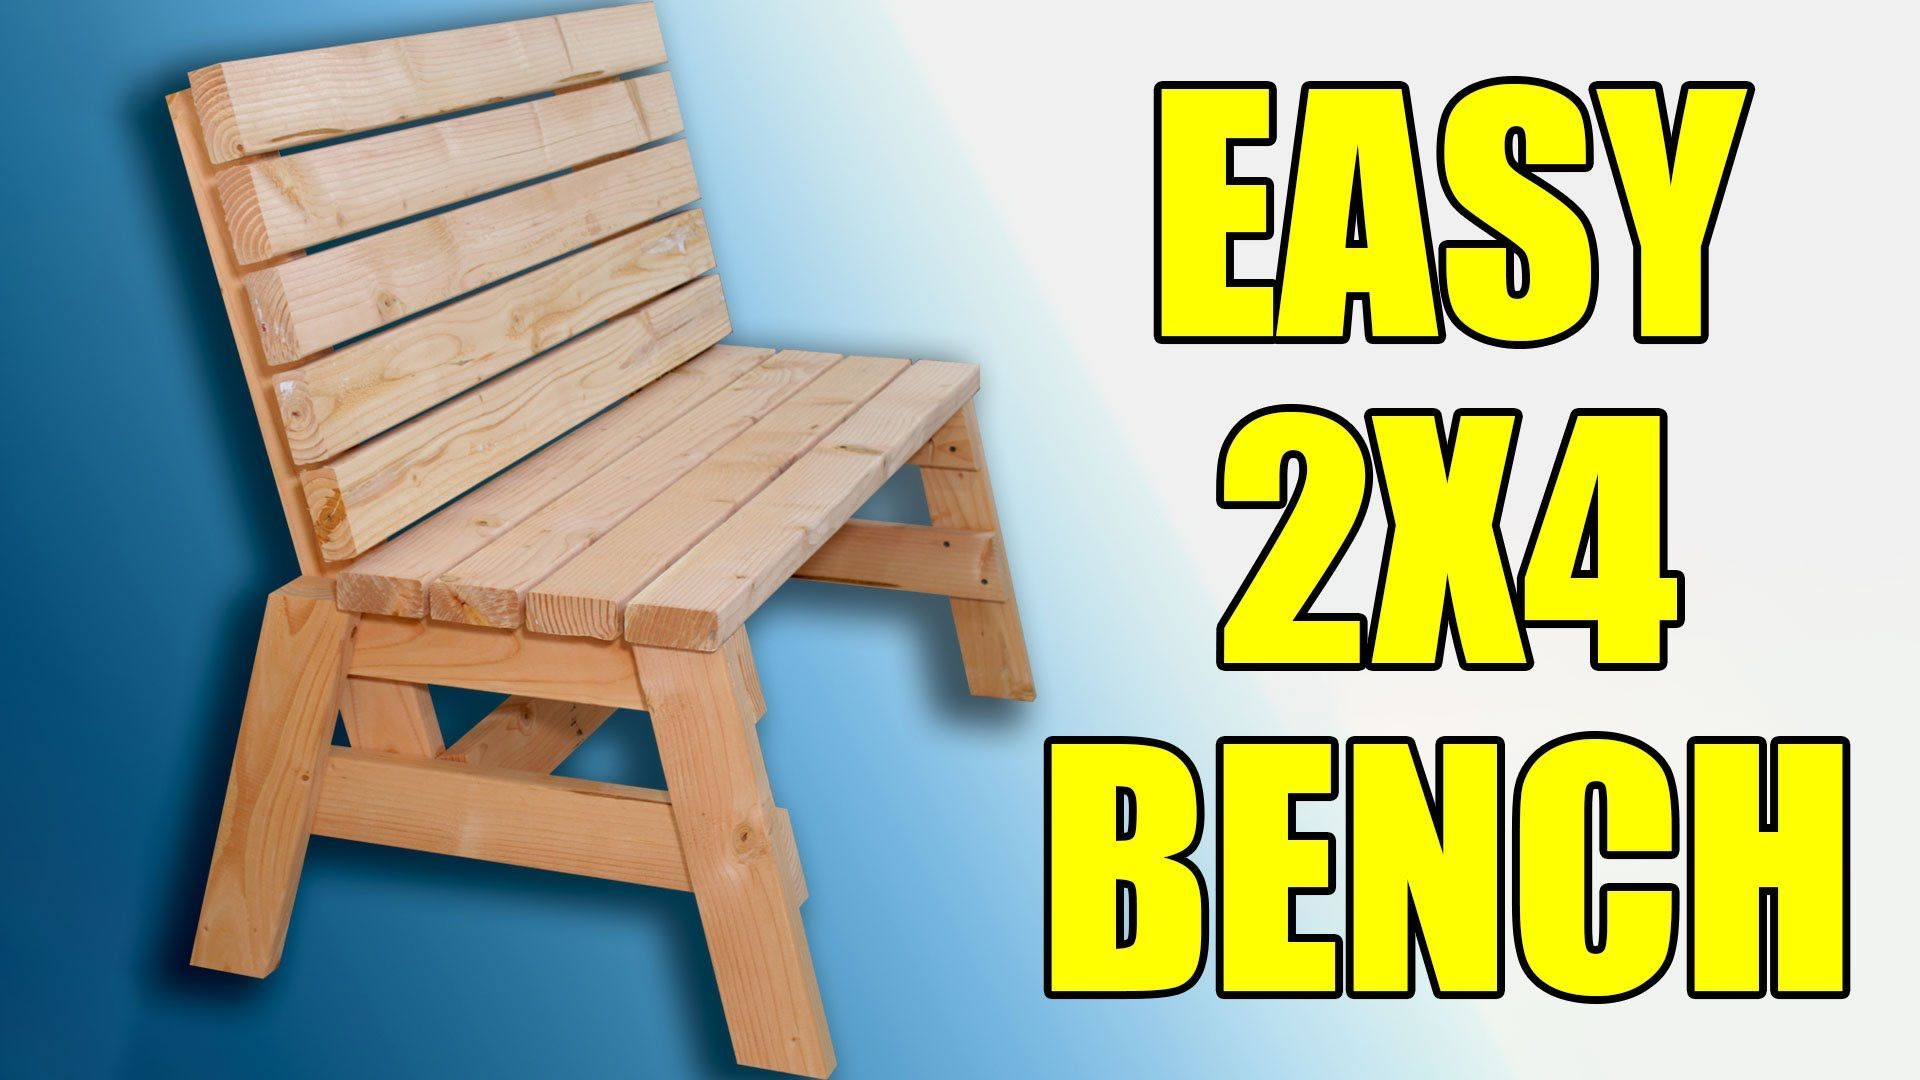 Plans Here Http Jayscustomcreations Com 2013 06 29 Free Plans 2x4 Outdoor Bench You Can Build This Supe Woodworking Bench Diy Bench Woodworking Bench Plans